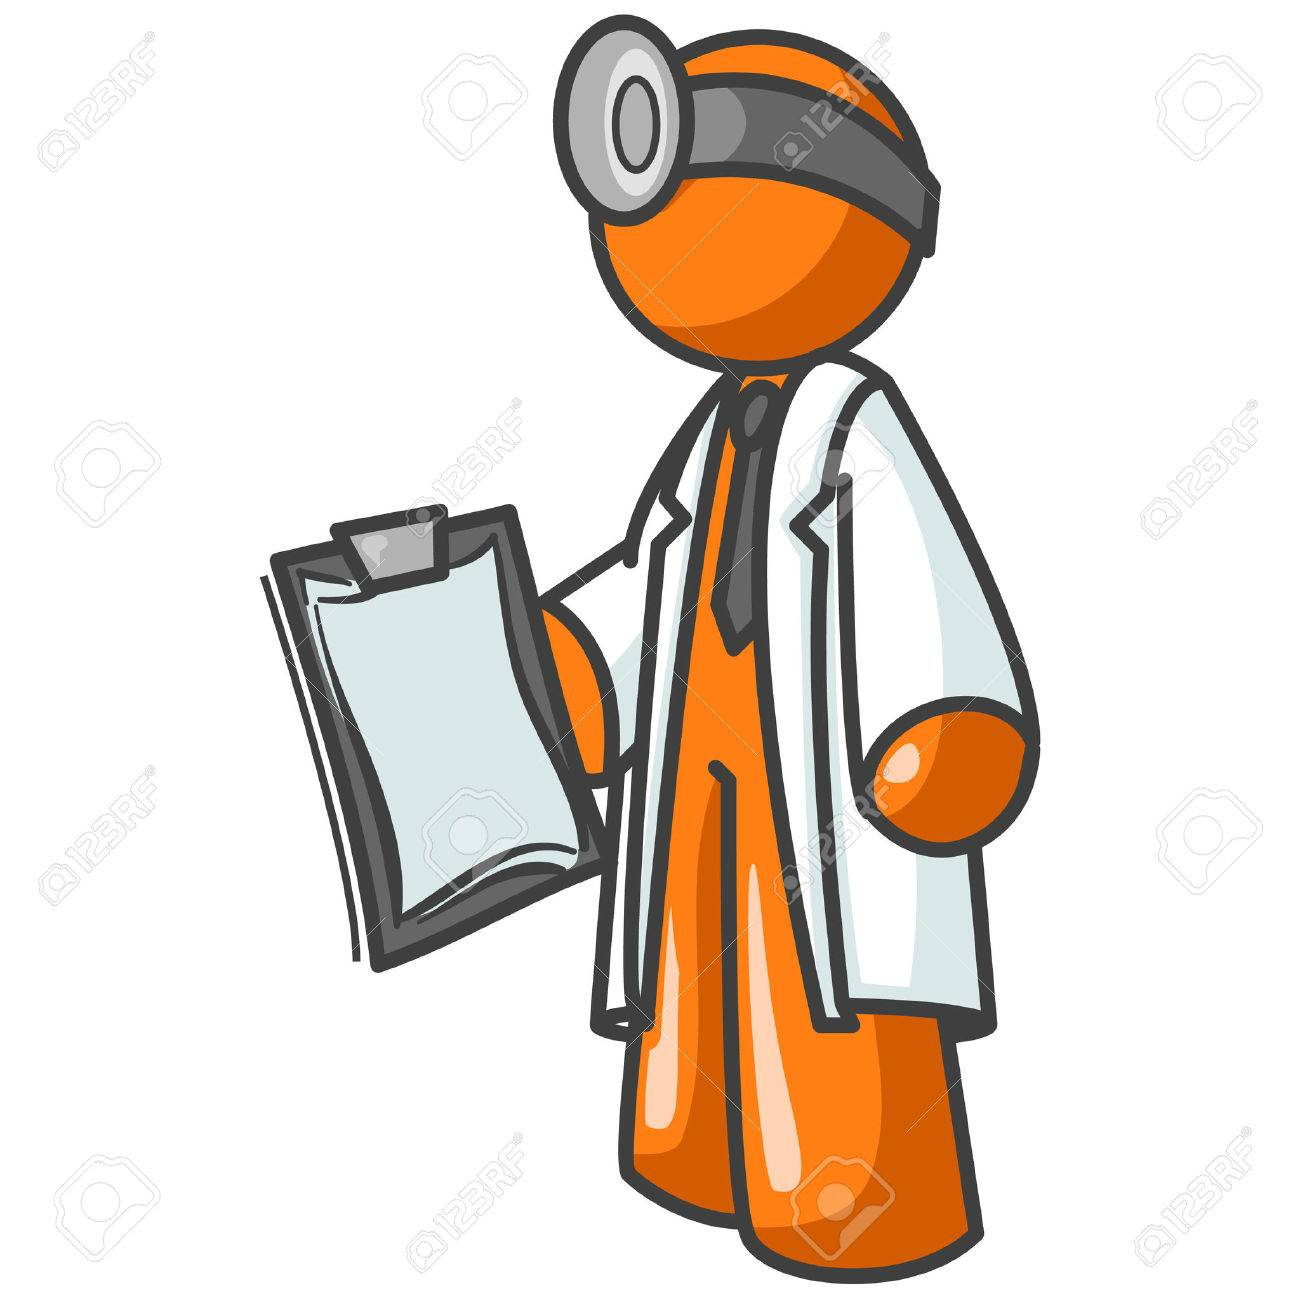 Obviously a doctor, but could also be a concept for computer repair or troubleshooting. Stock Vector - 1905759